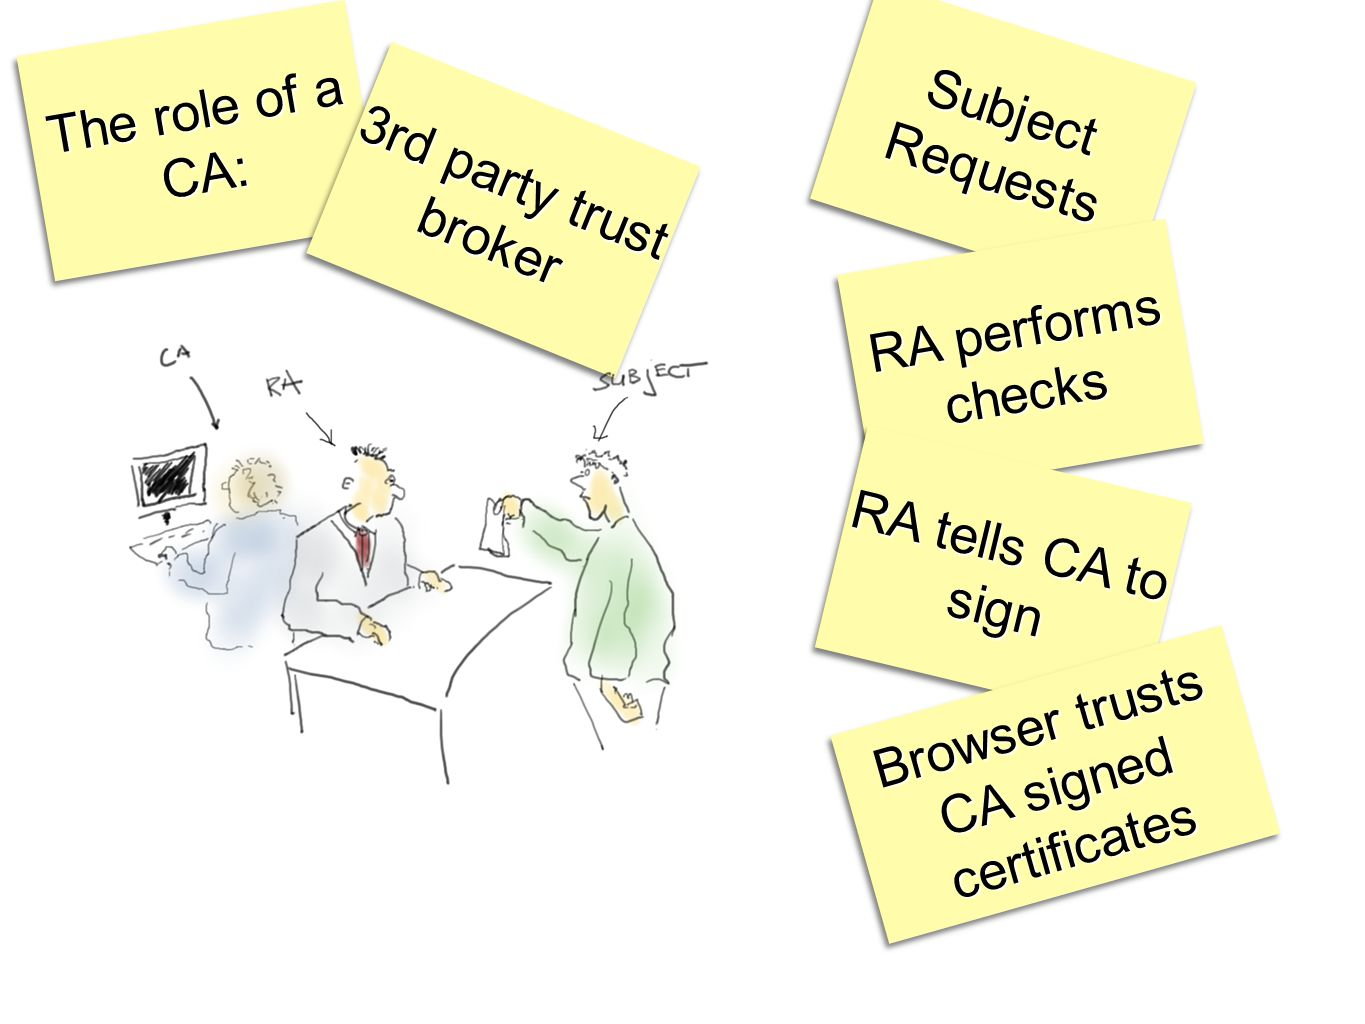 The role of a CA: 3rd party trust broker SubjectRequestsSubjectRequests RA performs checks RA tells CA to sign Browser trusts CA signed certificates